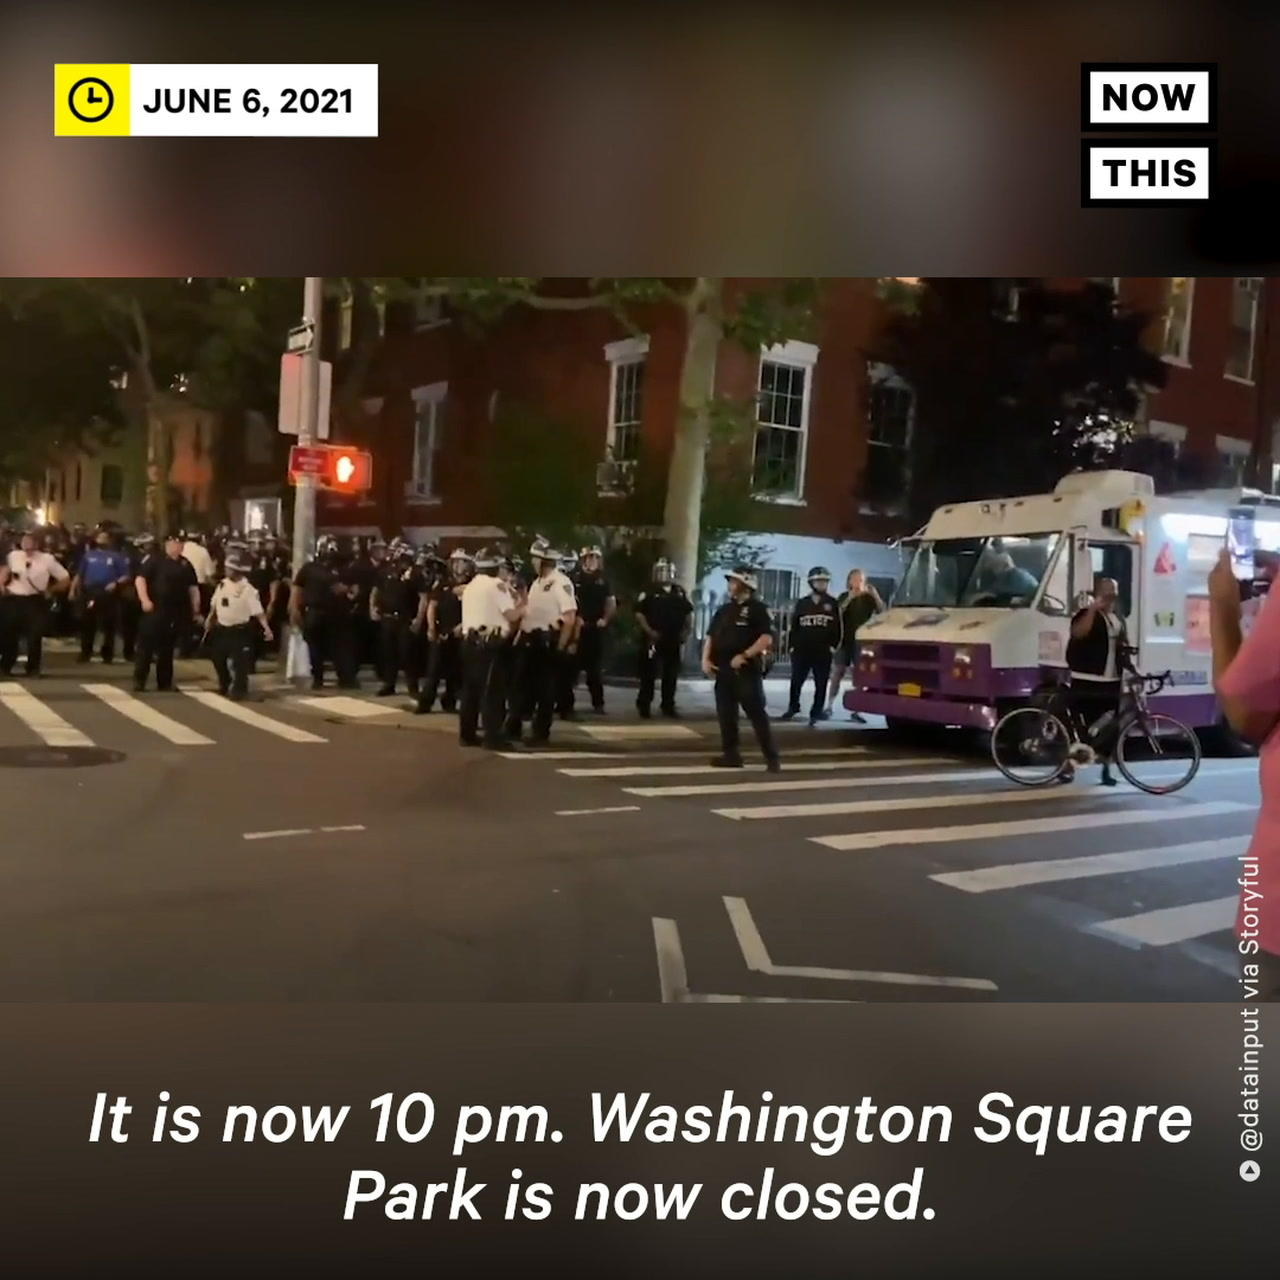 NYPD Officers in Riot Gear Enforce Curfew in Washington Square Park